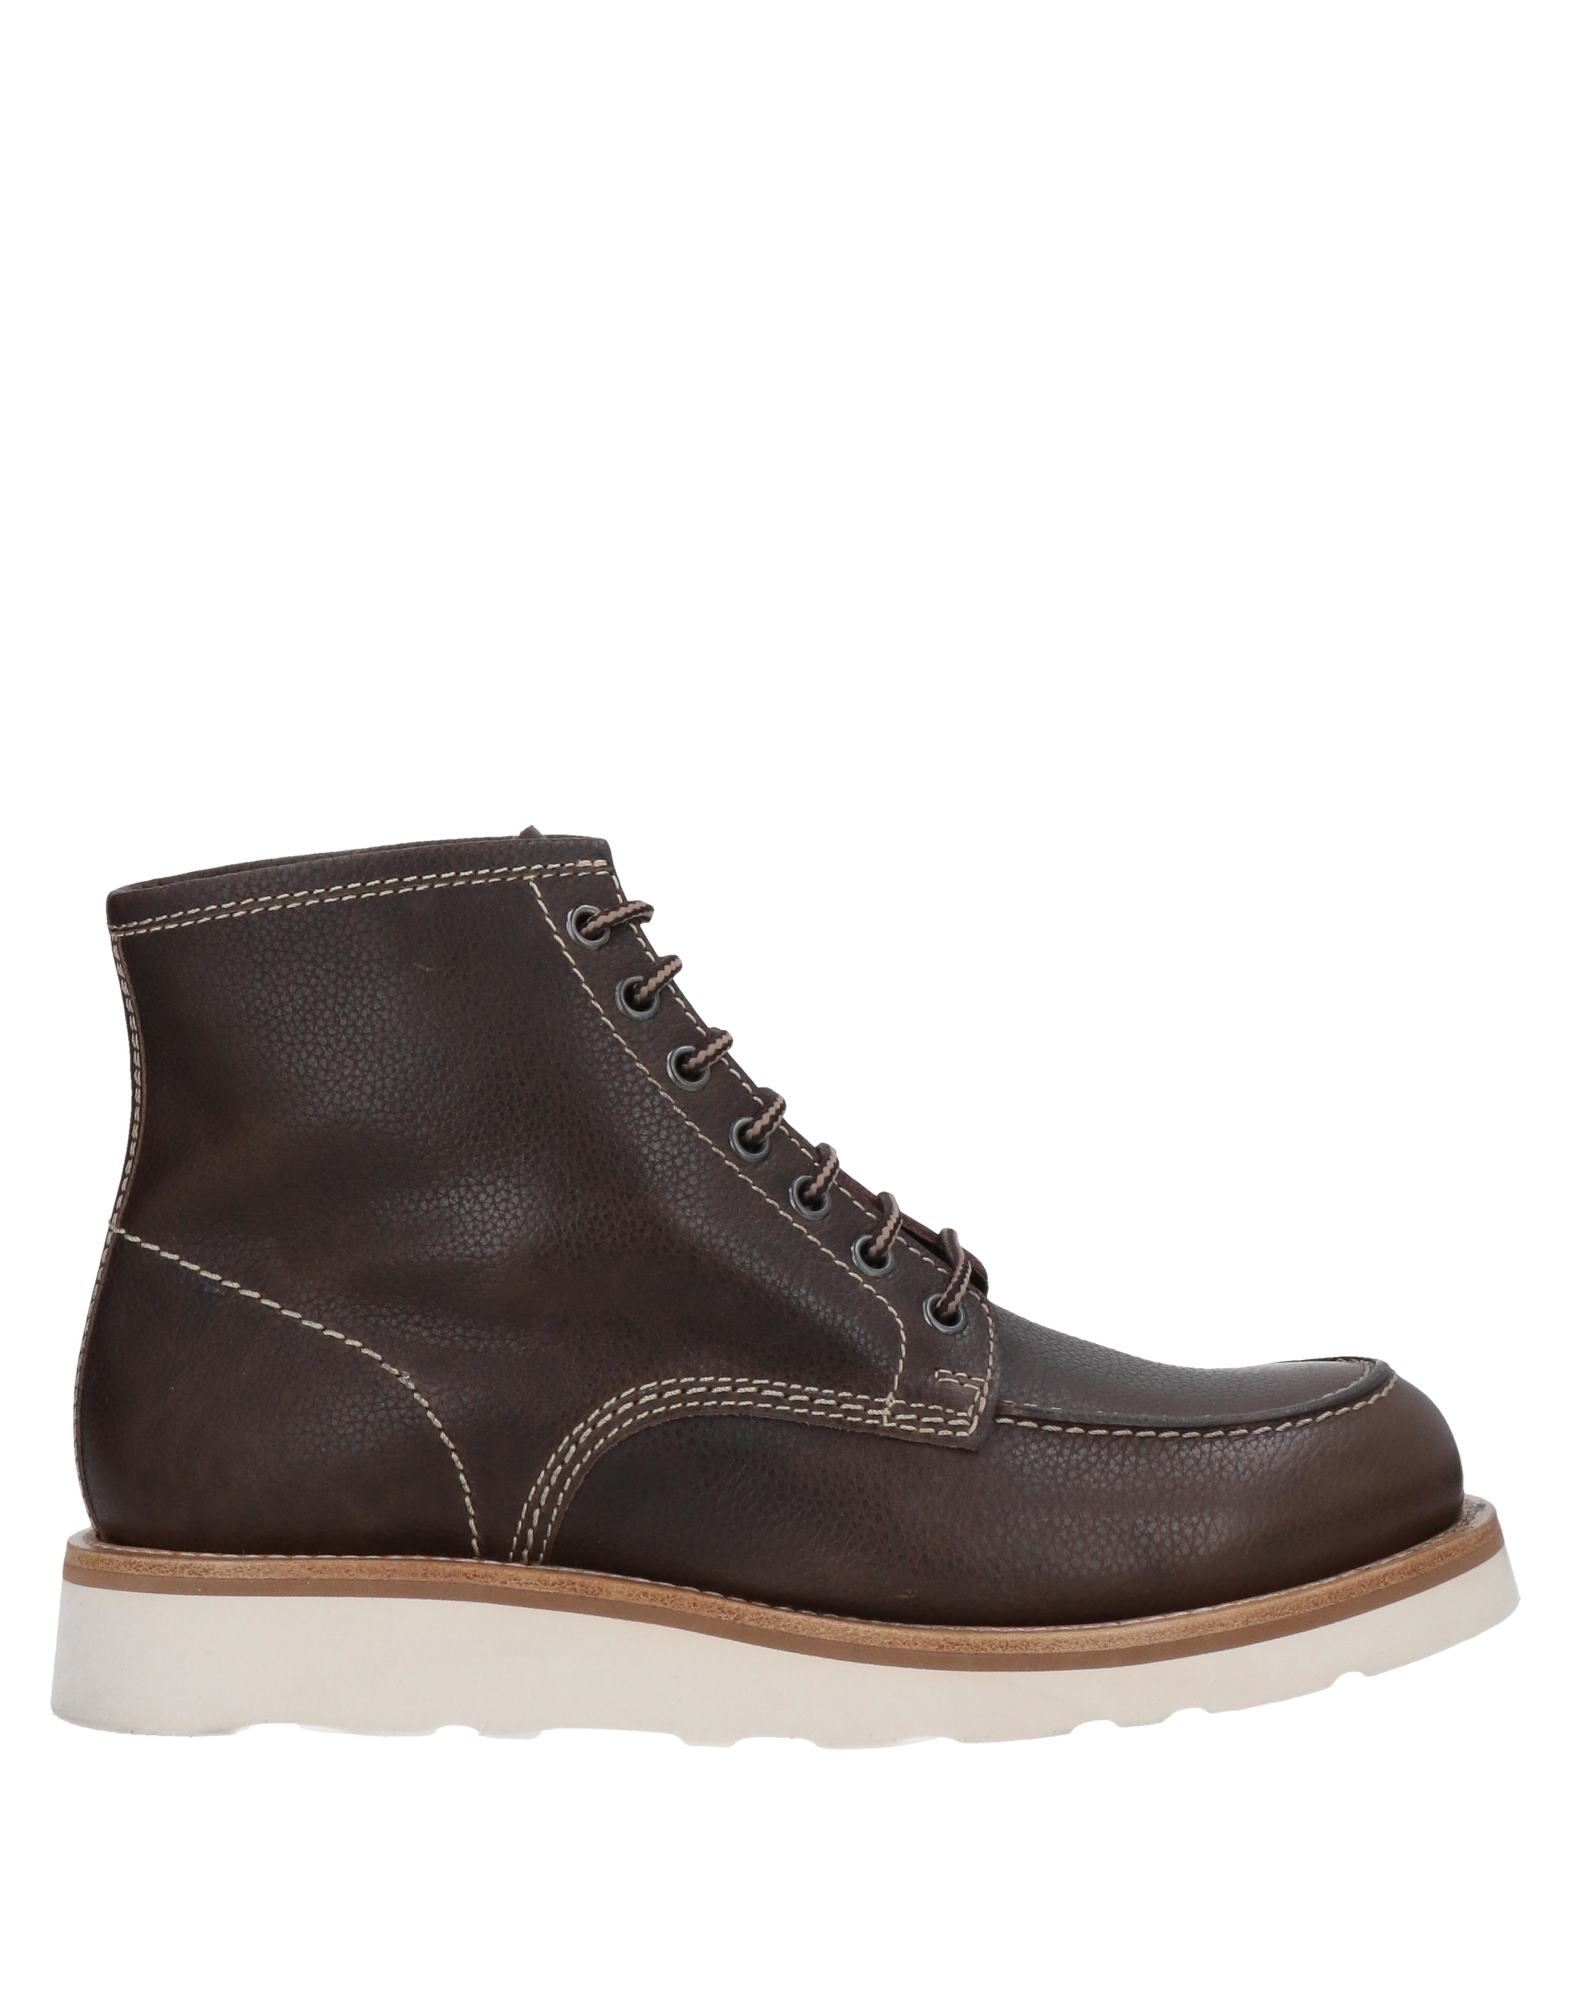 SEBOY'S Ankle boots - Item 11916411